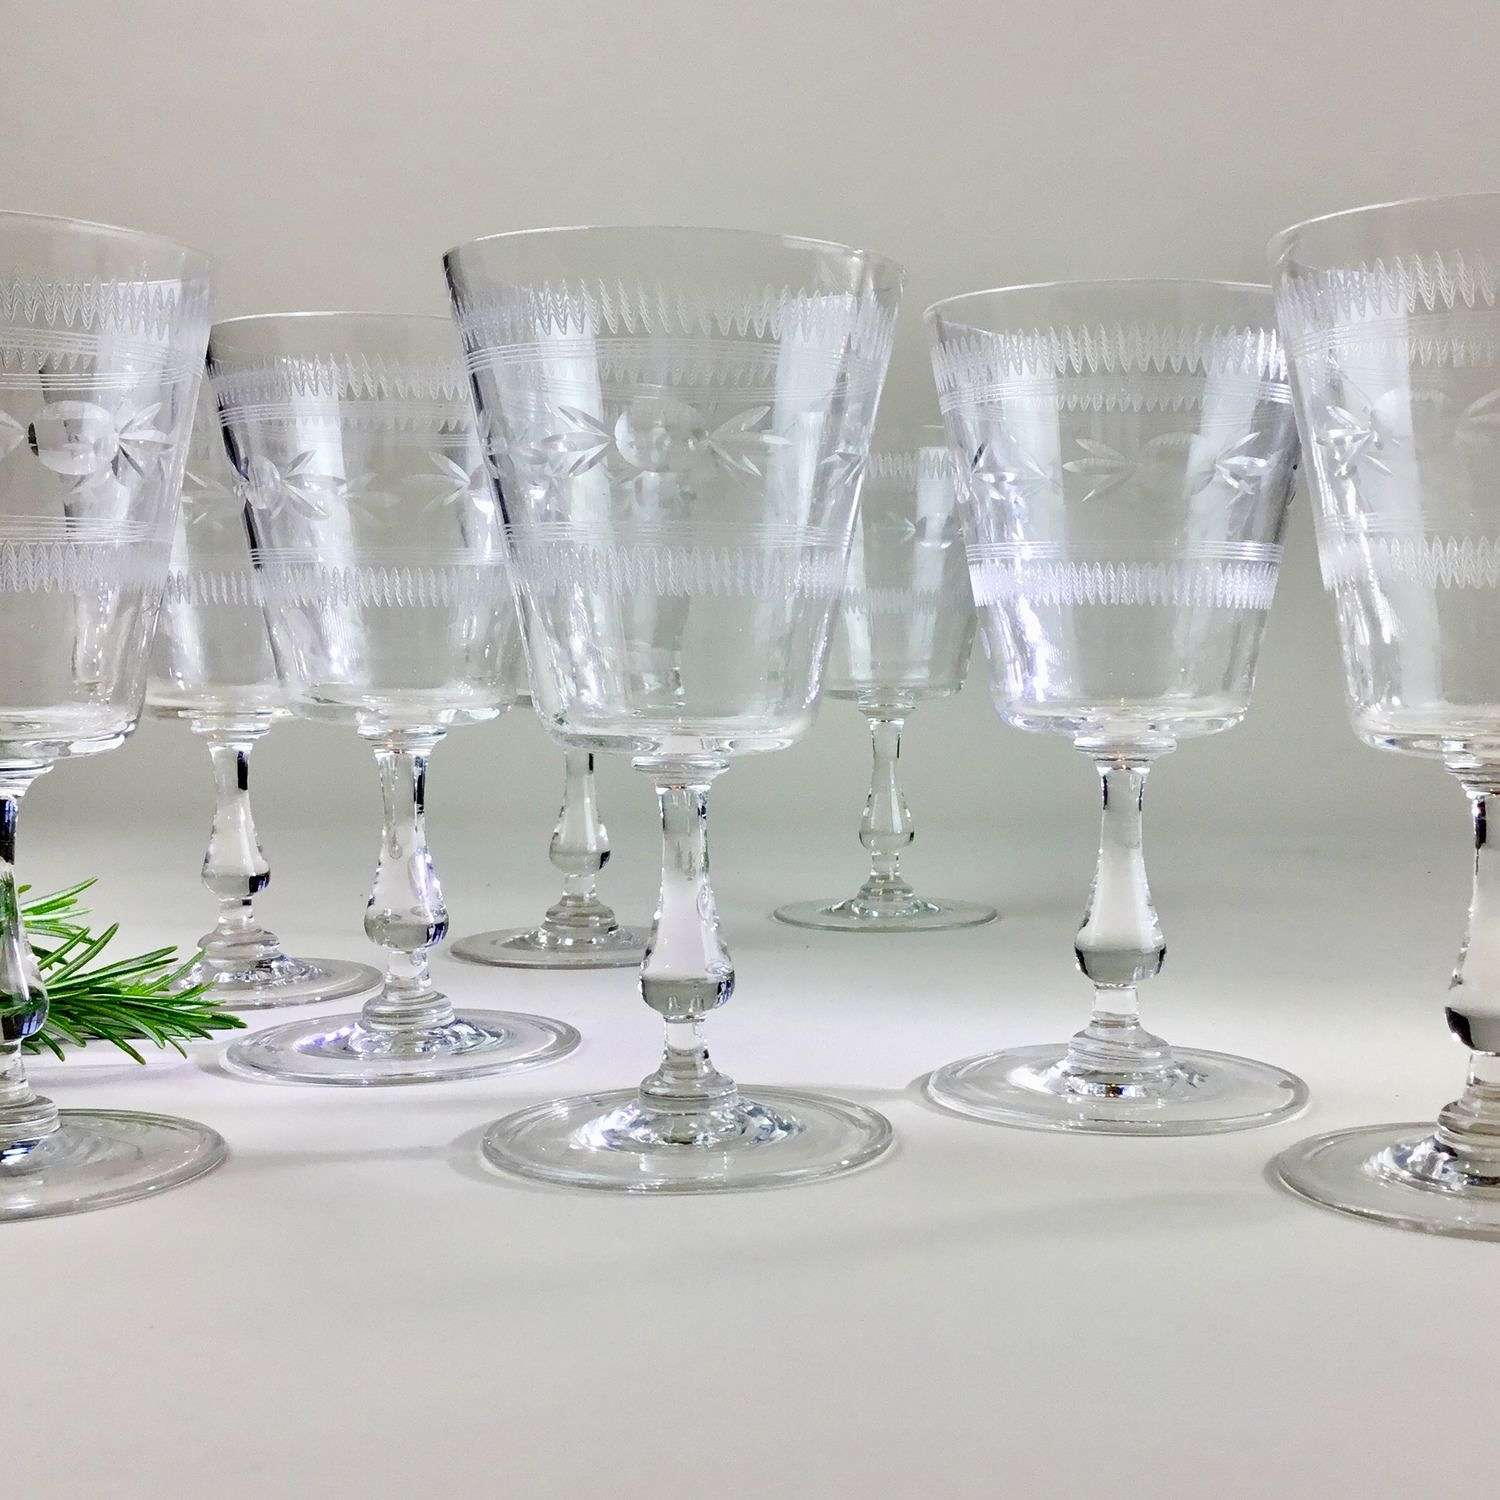 Elegant set of eight large etched wine glasses